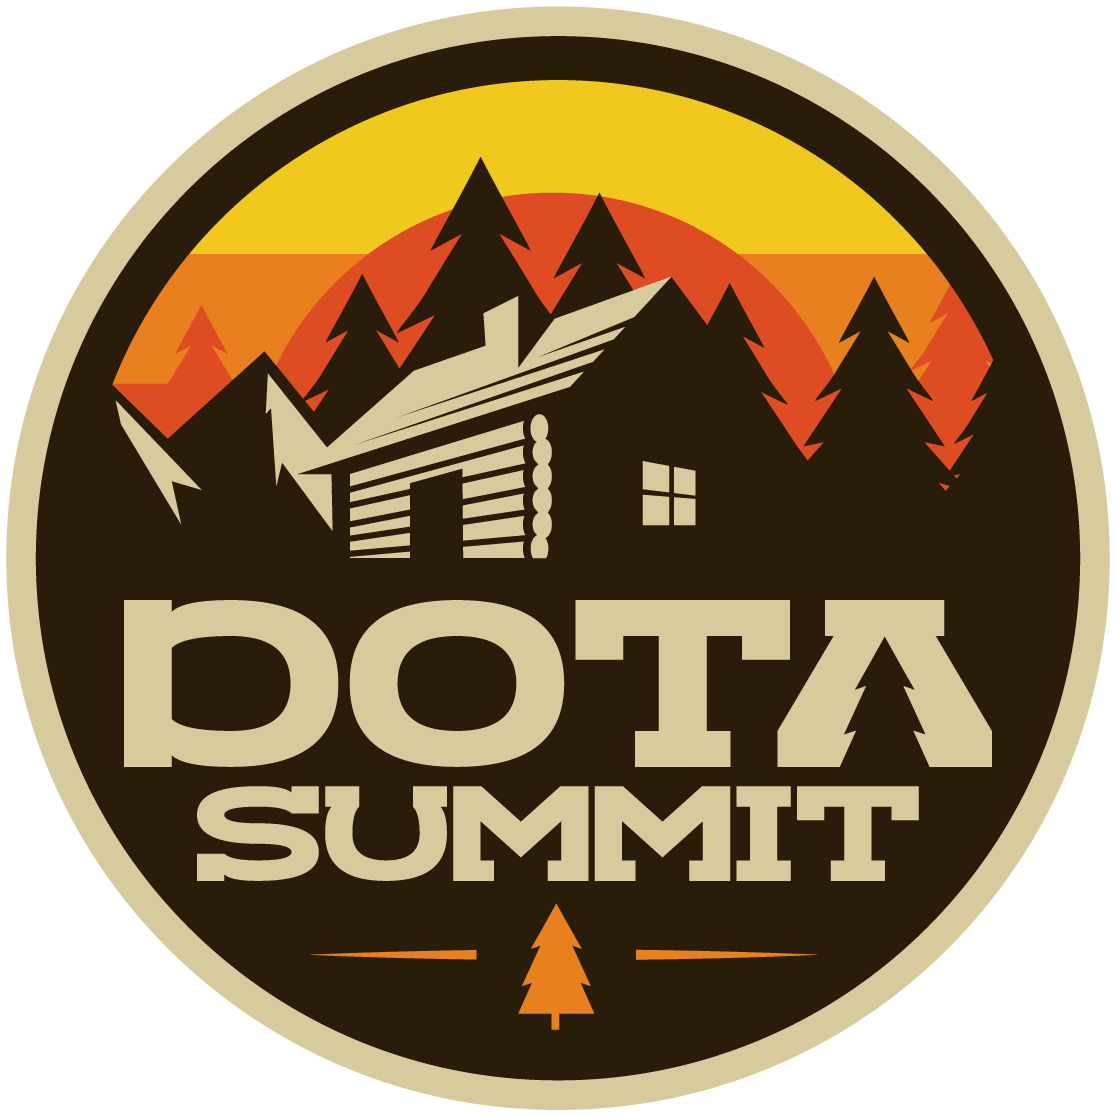 Dota summit 9 logo